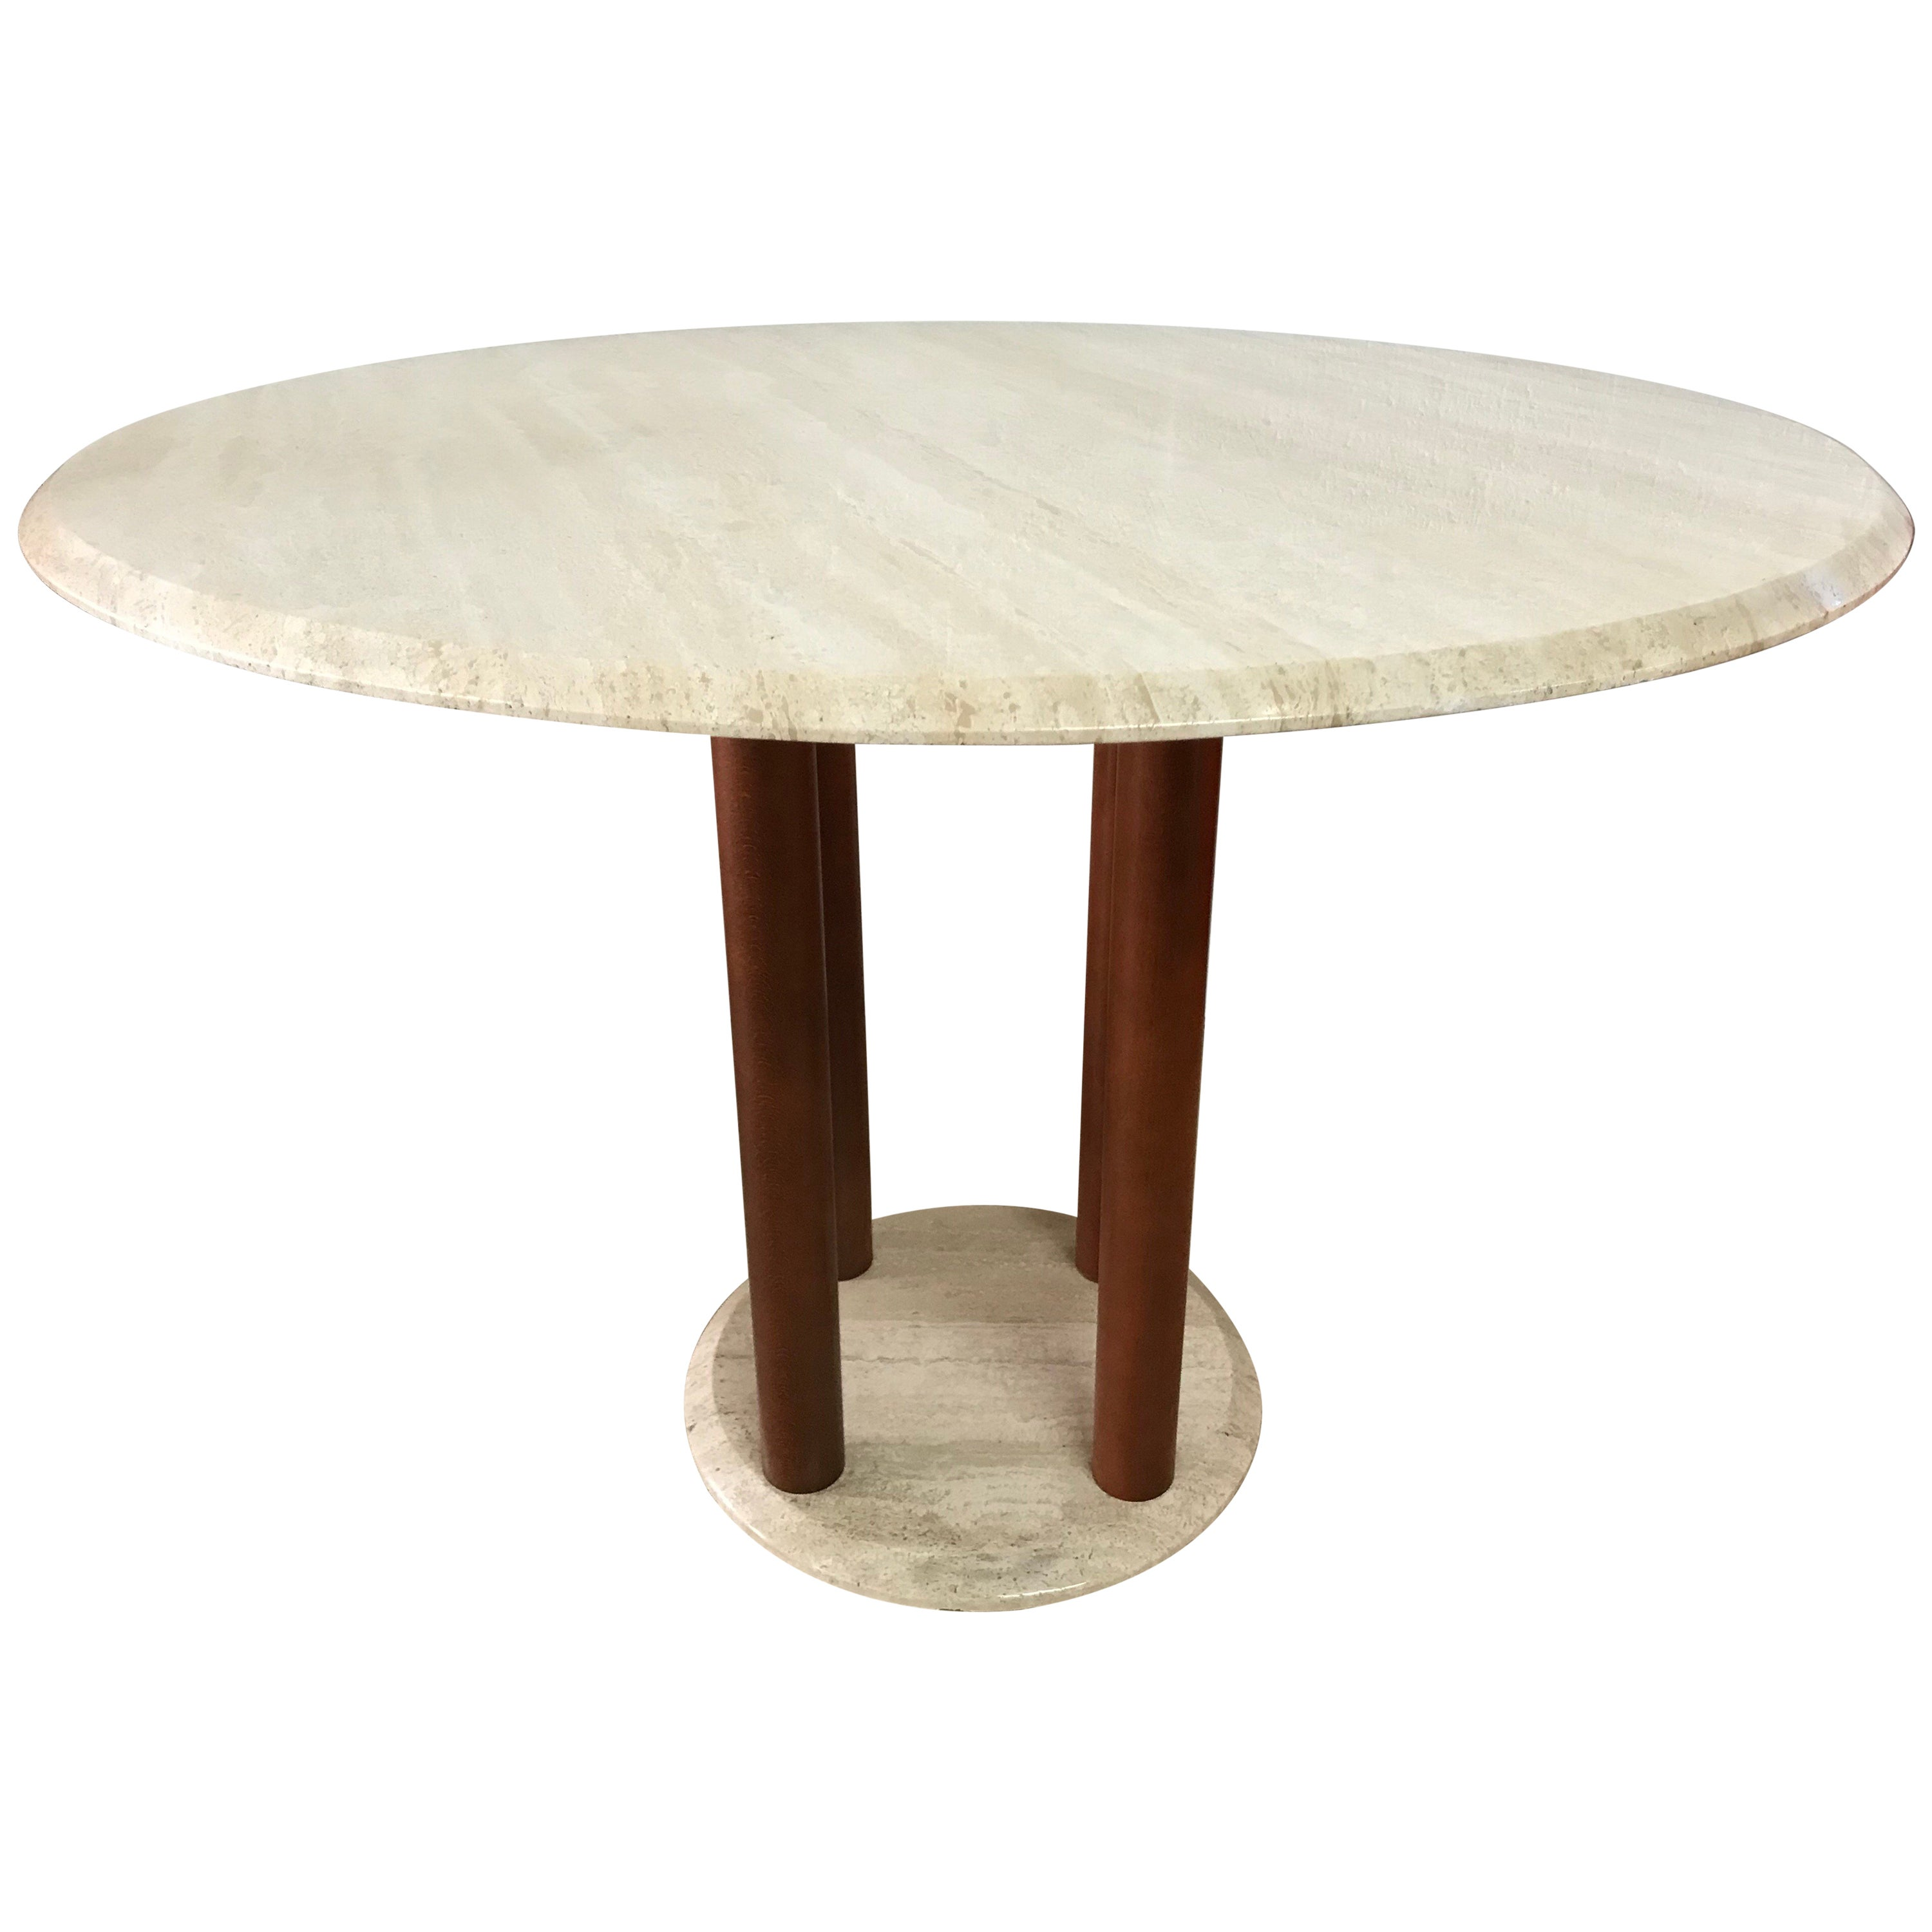 Post Modern Italian Travertine and Wood Dining Table, Italy, 1980s